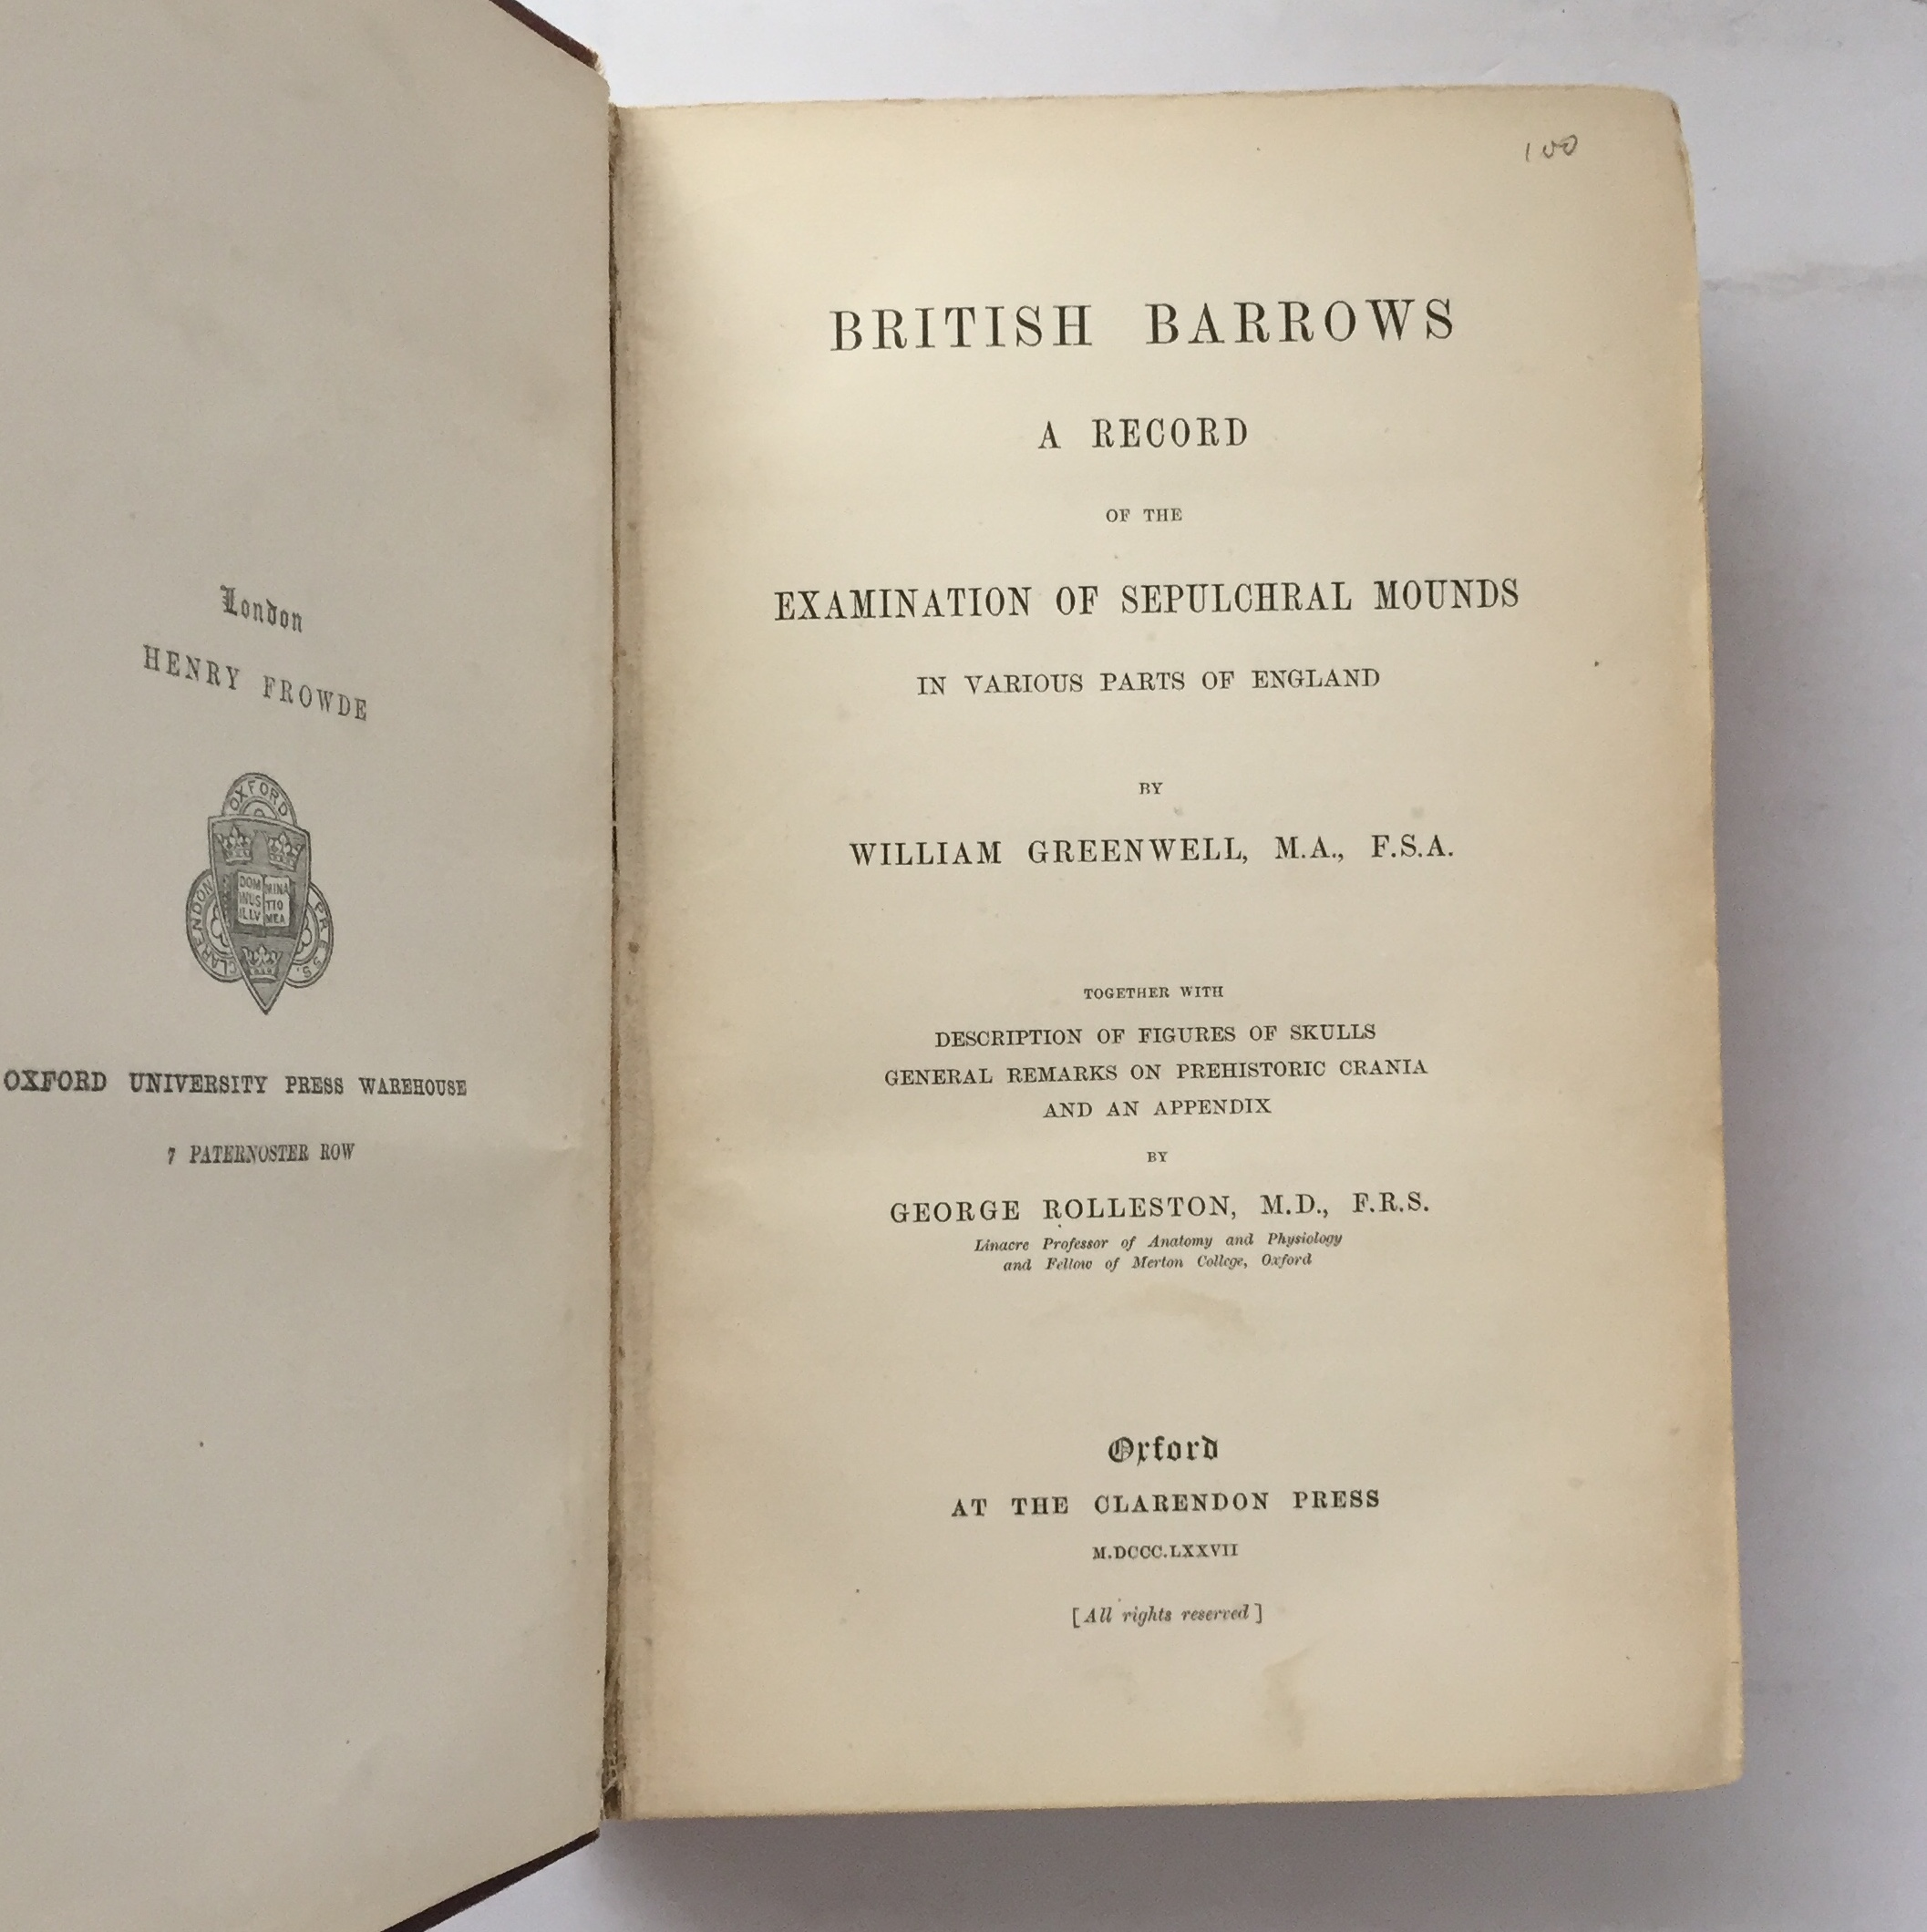 Image for British Barrows :A Record of the Examination of Sepulchral Mounds in Various Parts of England, together with descriptions of figures of skulls, general remarks on Prehistoric Crania, and an appendix